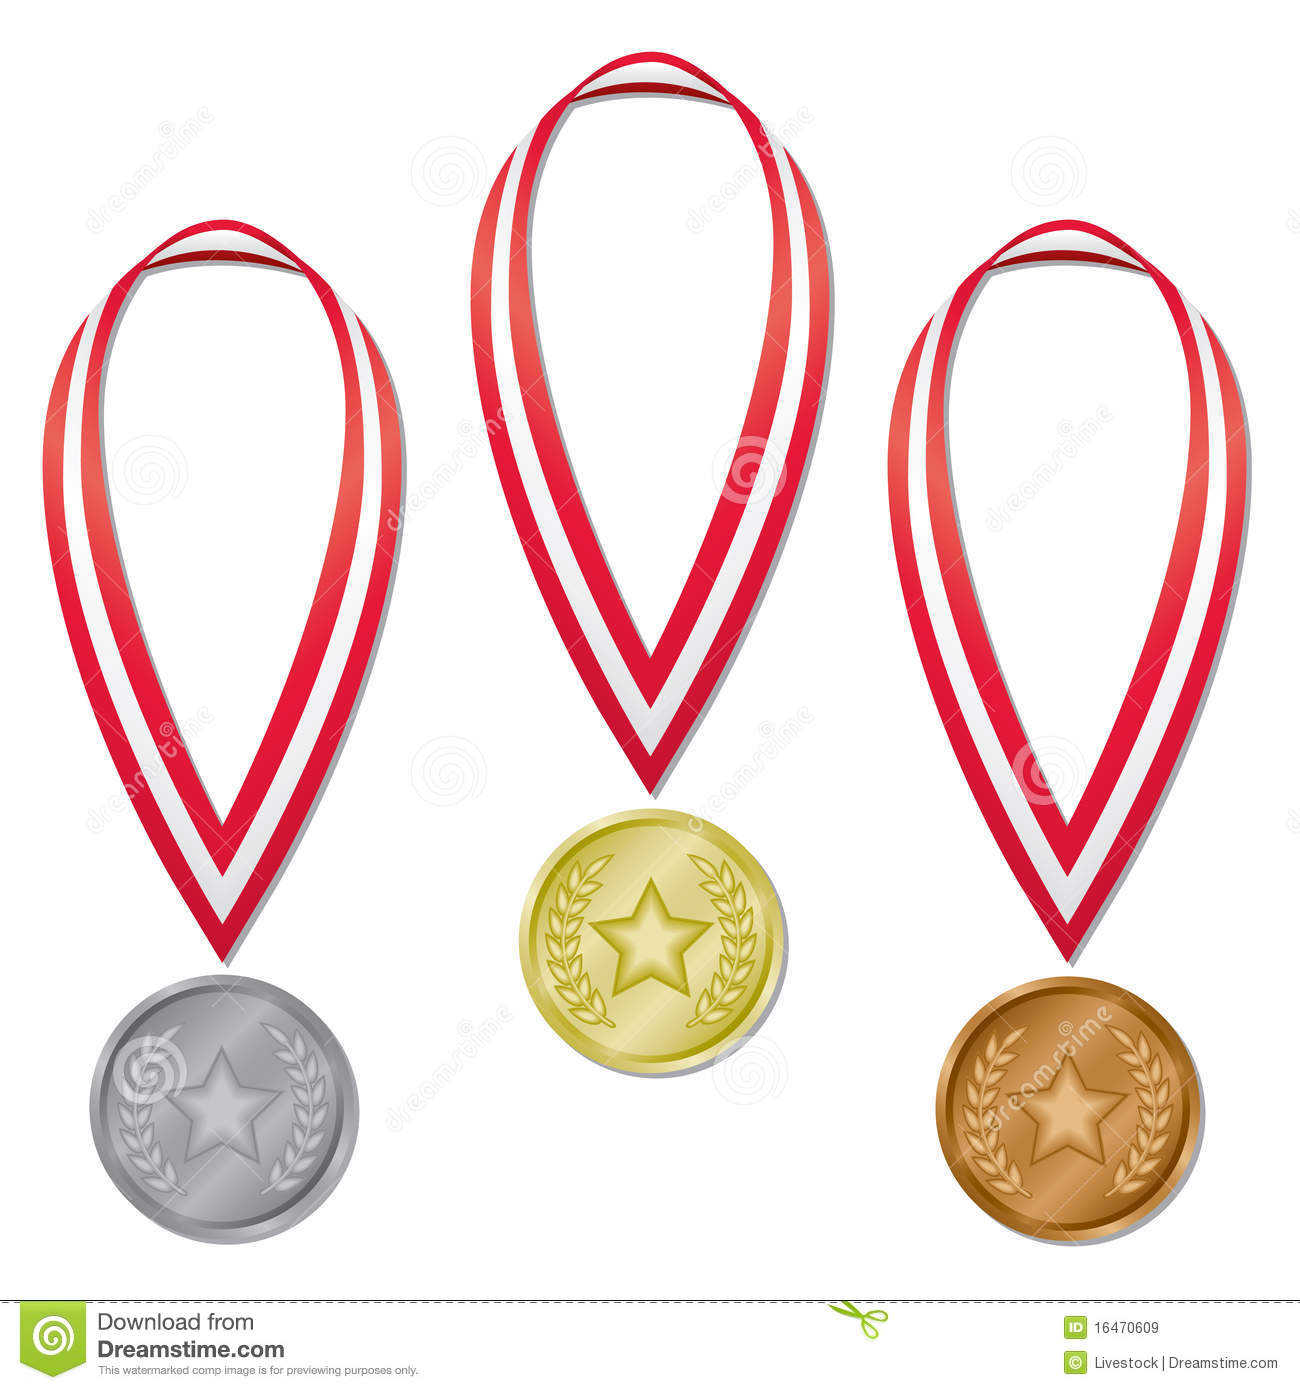 hight resolution of three olympic medals in gold silver and bronze with red and white ribbons perfect for olympic projects blends used